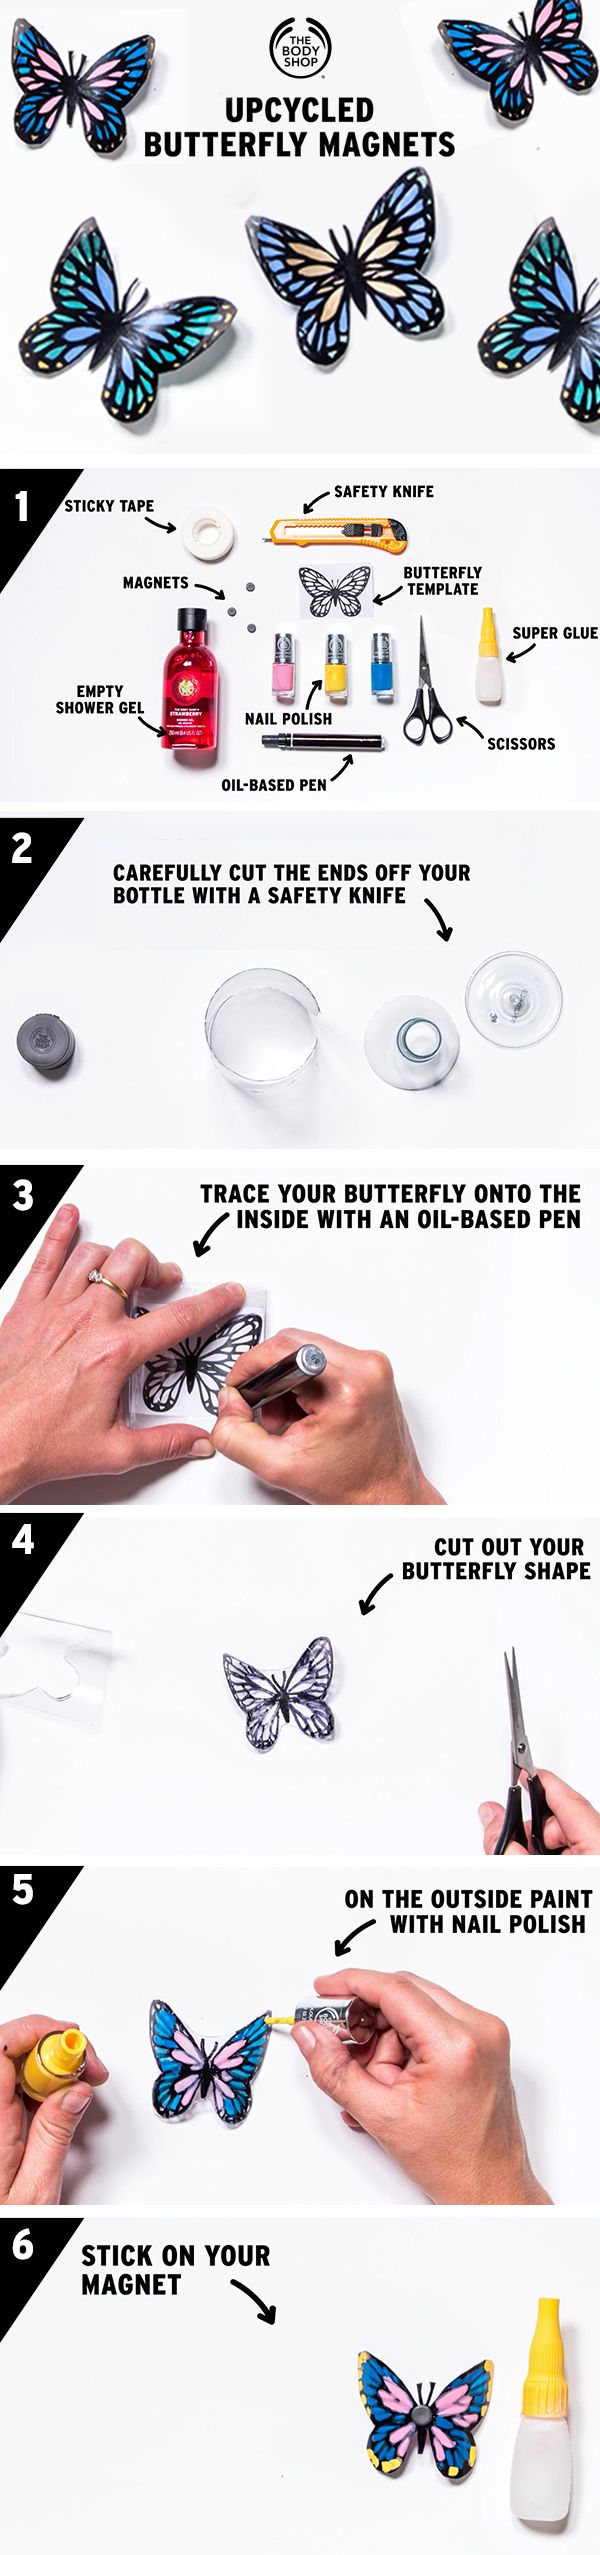 Looking to limit the amount of plastic you throw away? Here's how to upcycle your empty The Body Shop shower gel bottles and turn them into super-cute butterfly magnets…